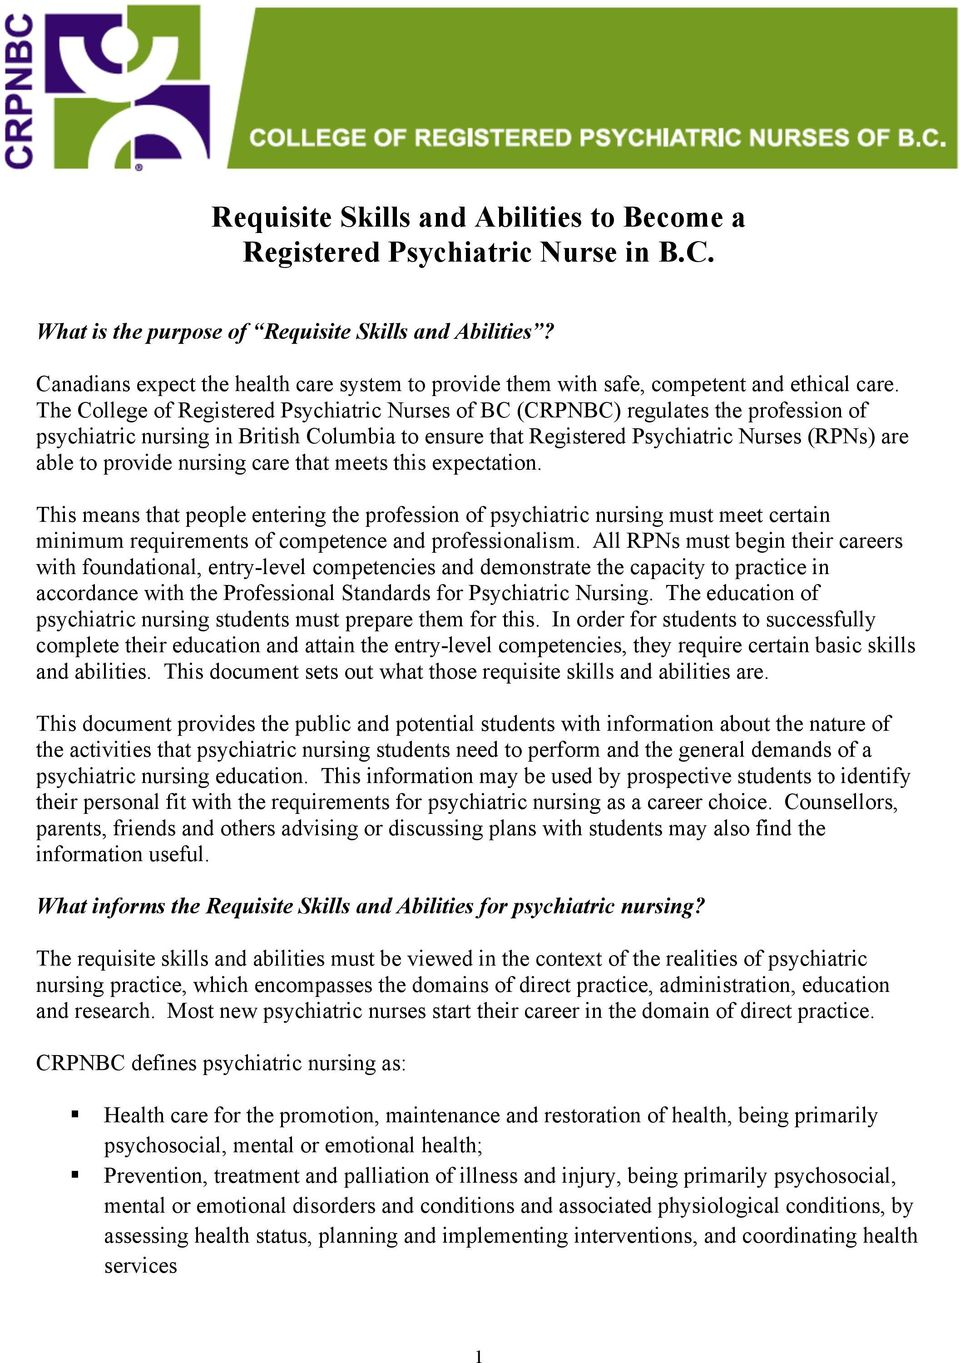 The College of Registered Psychiatric Nurses of BC (CRPNBC) regulates the profession of psychiatric nursing in British Columbia to ensure that Registered Psychiatric Nurses (RPNs) are able to provide